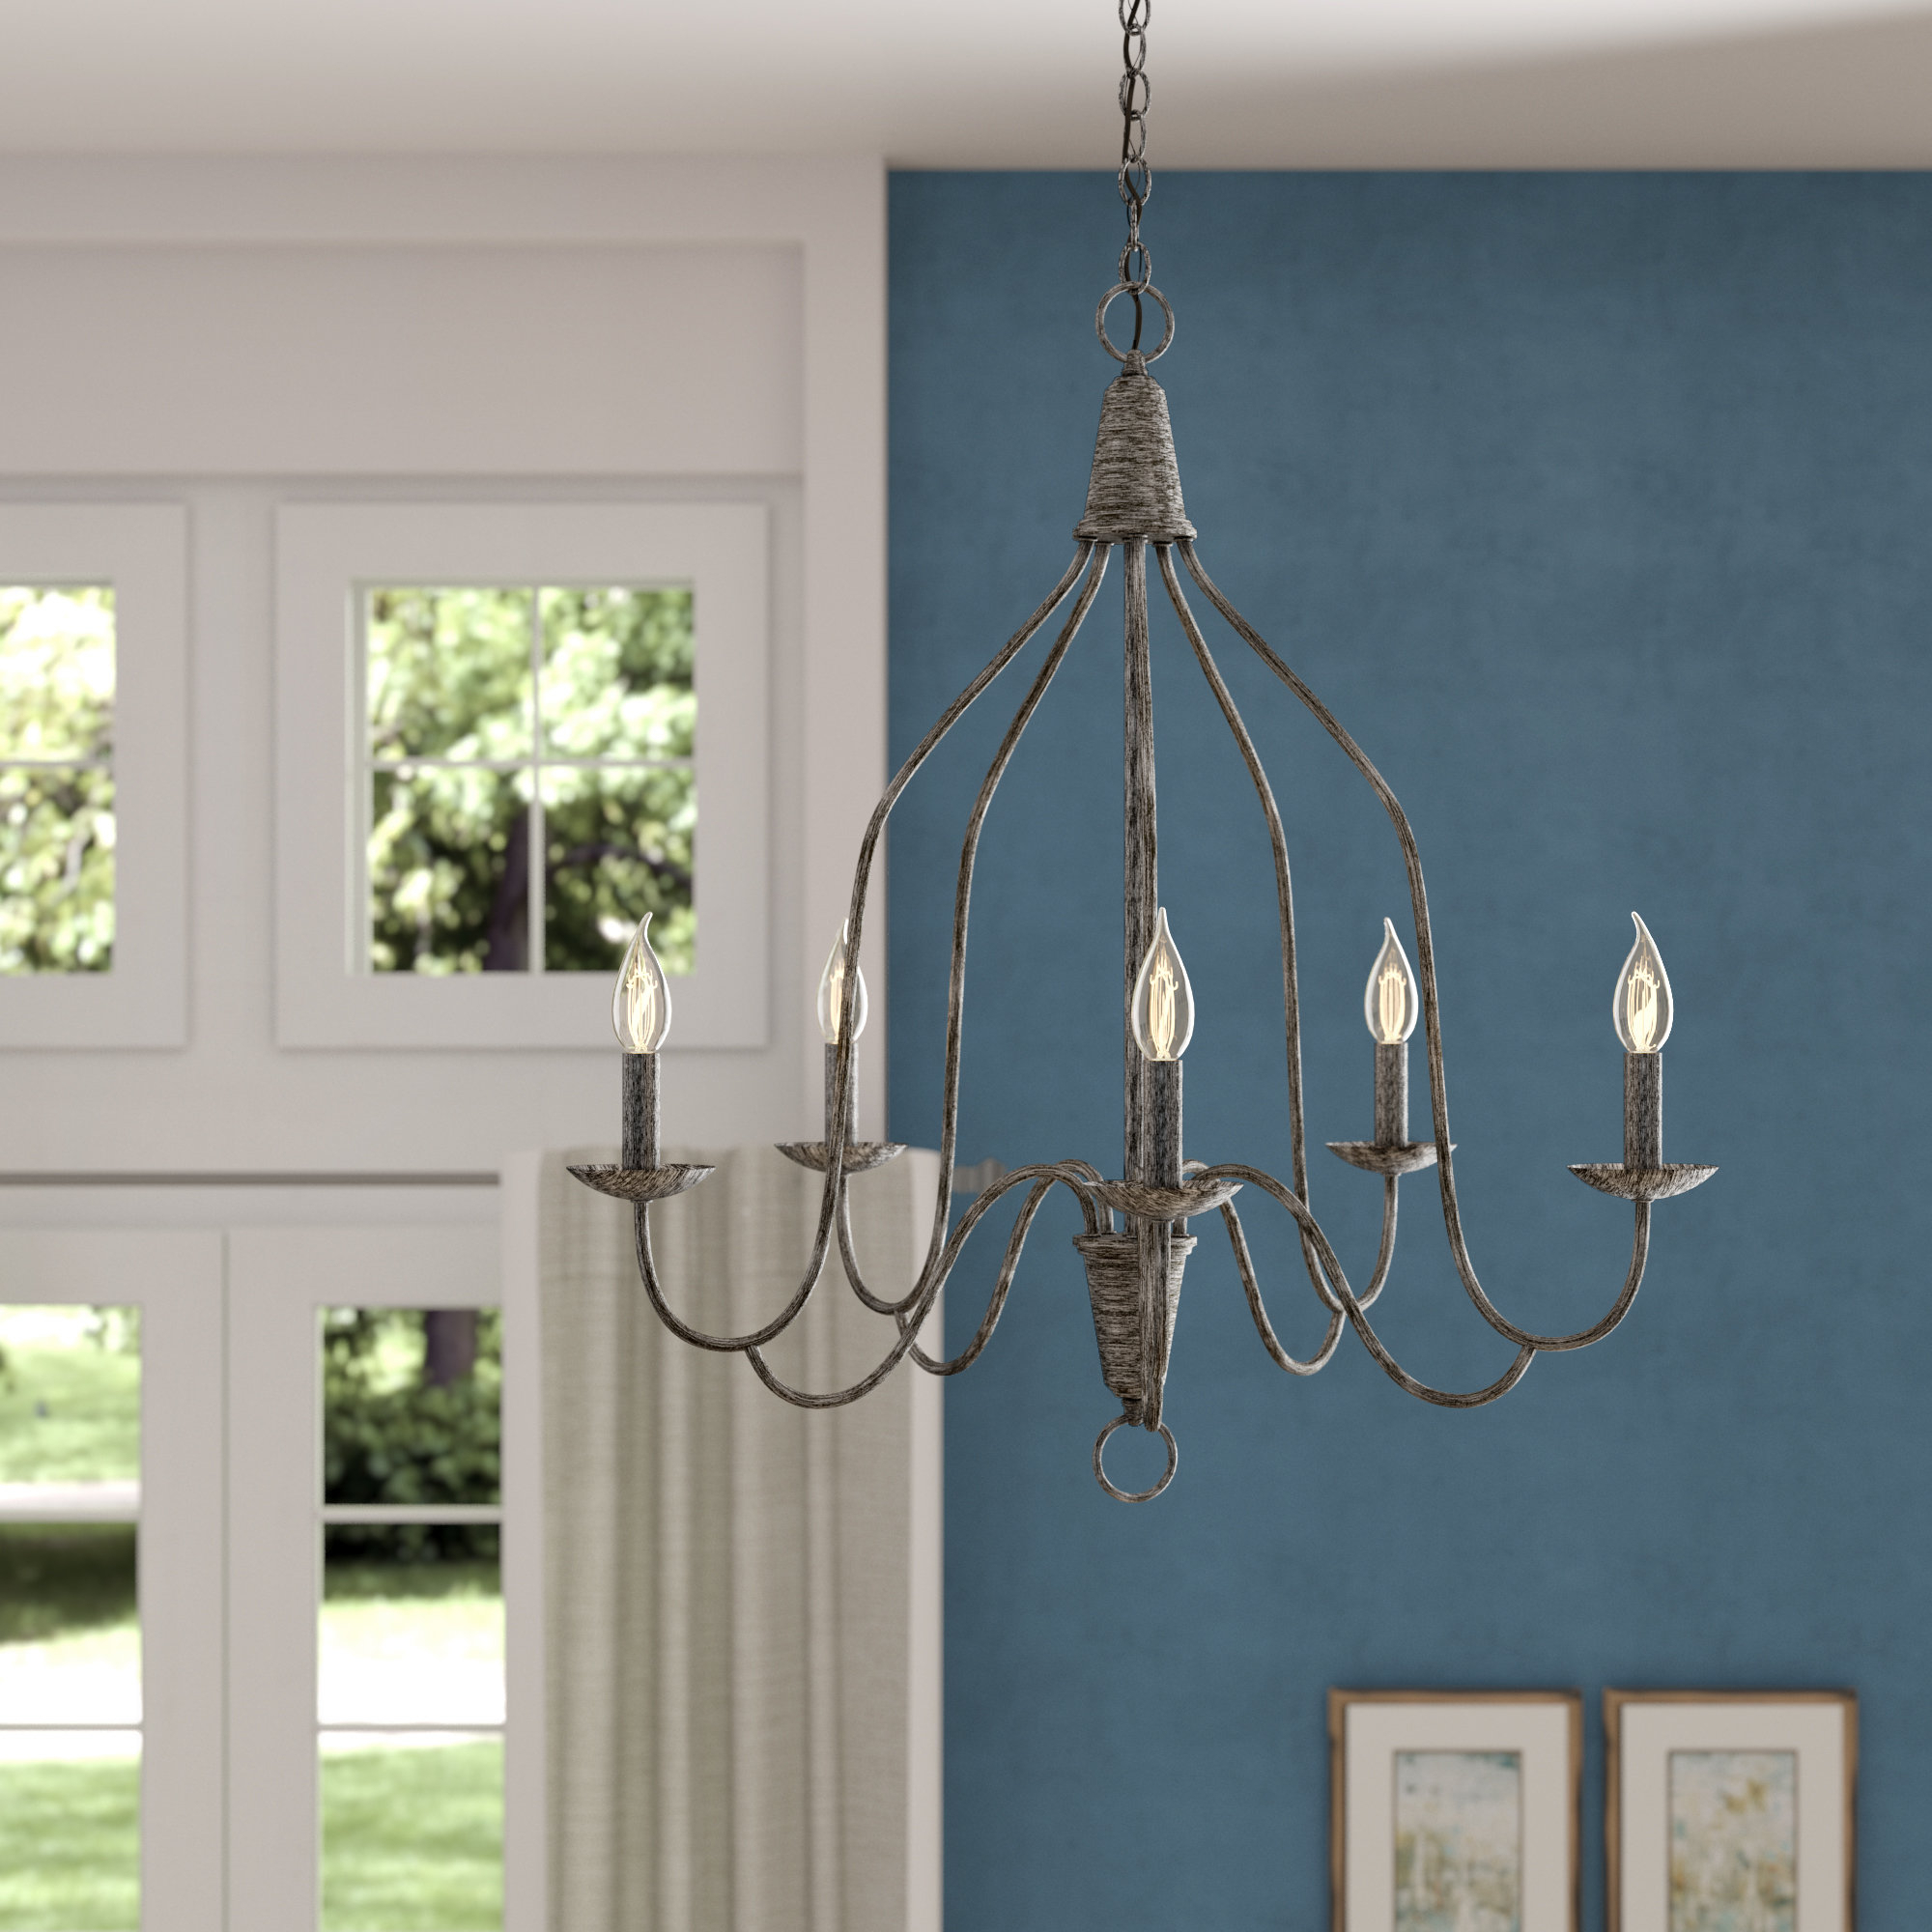 Geeta 5 Light Candle Style Chandelier With Regard To Florentina 5 Light Candle Style Chandeliers (View 21 of 30)